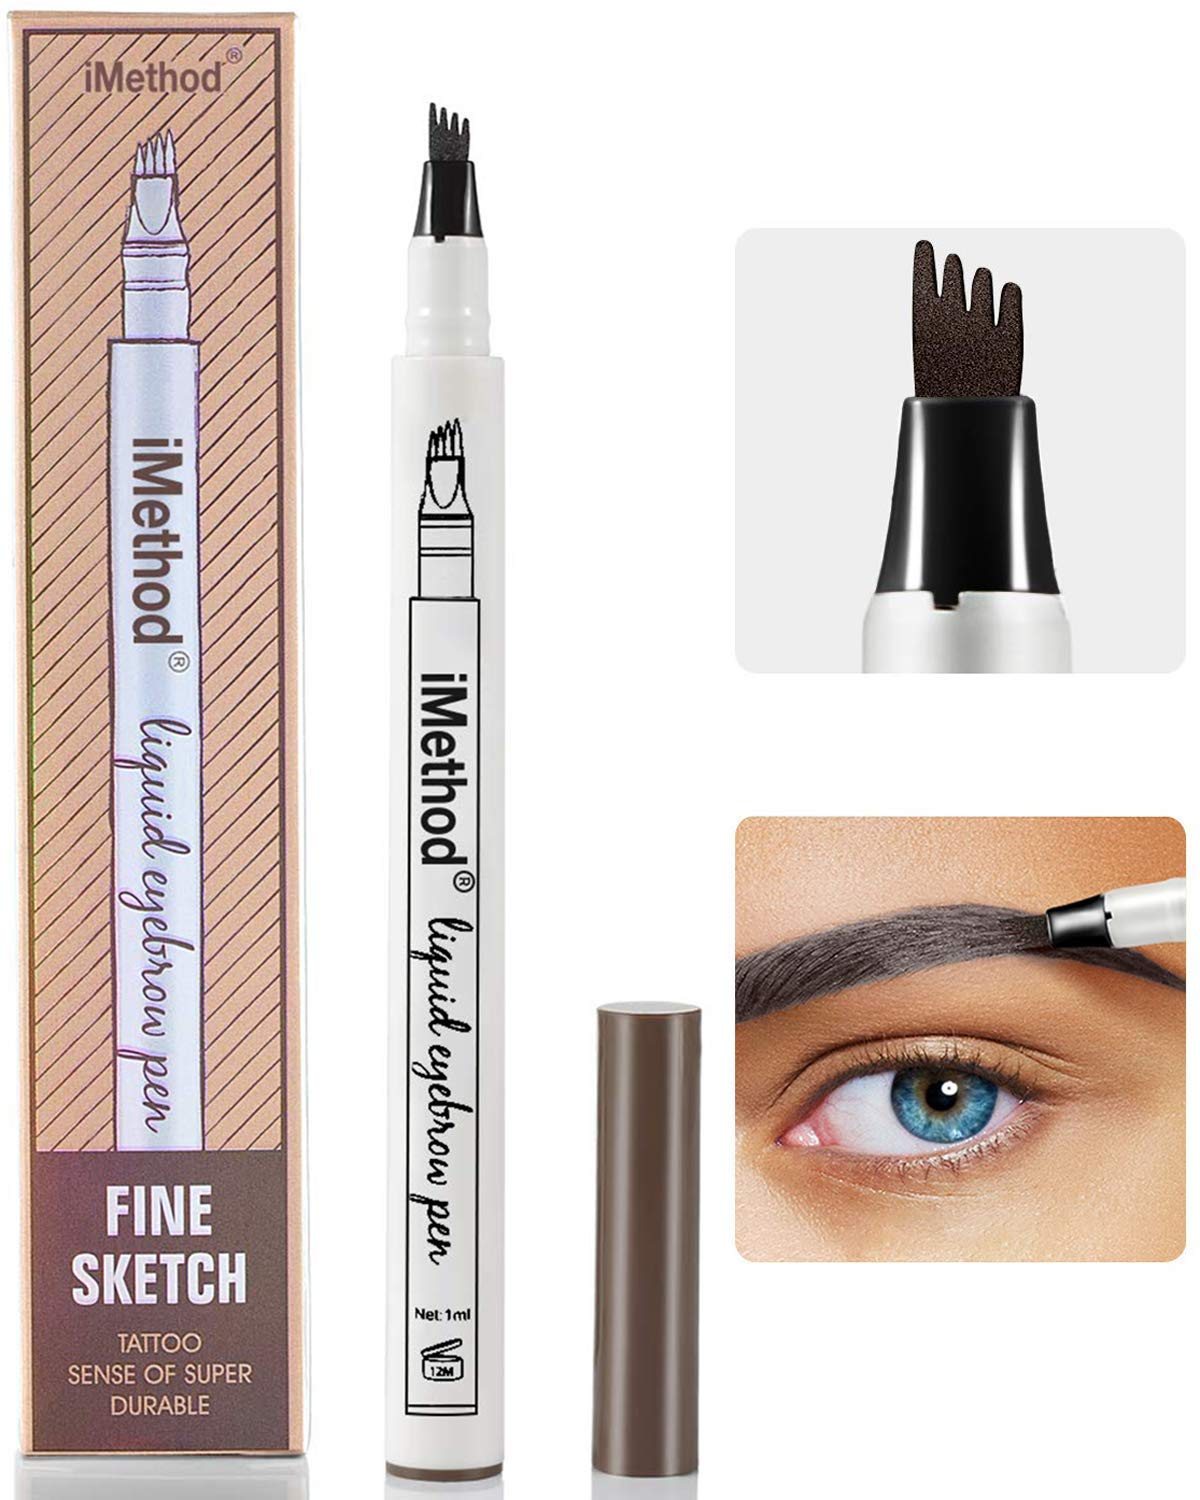 Eyebrow Tattoo Pen - iMethod Microblading Eyebrow Pencil with a Micro-Fork Tip Applicator Creates Natural Looking Brows Effortlessly and Stays on All Day (Dark grey)